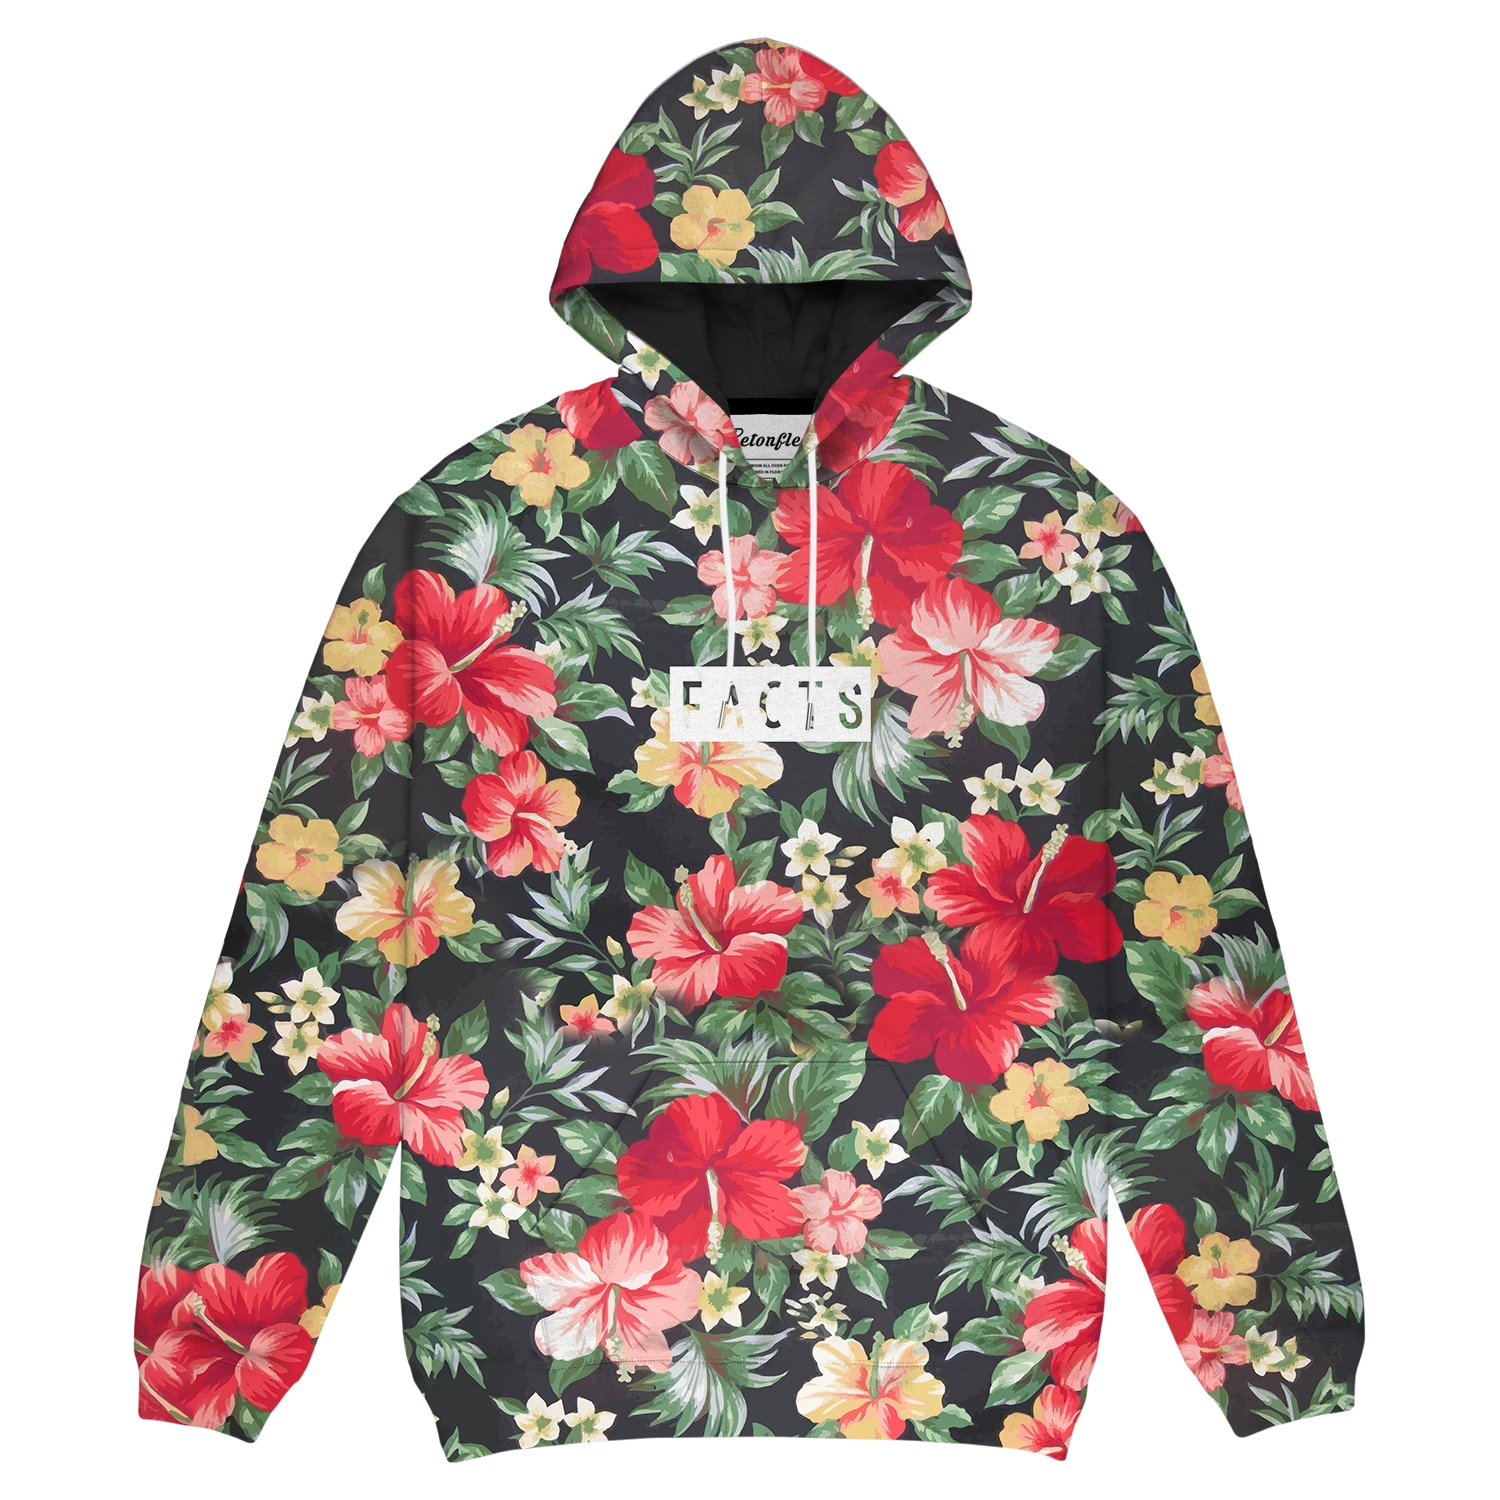 1a678a1f5 FACTS Hoodie